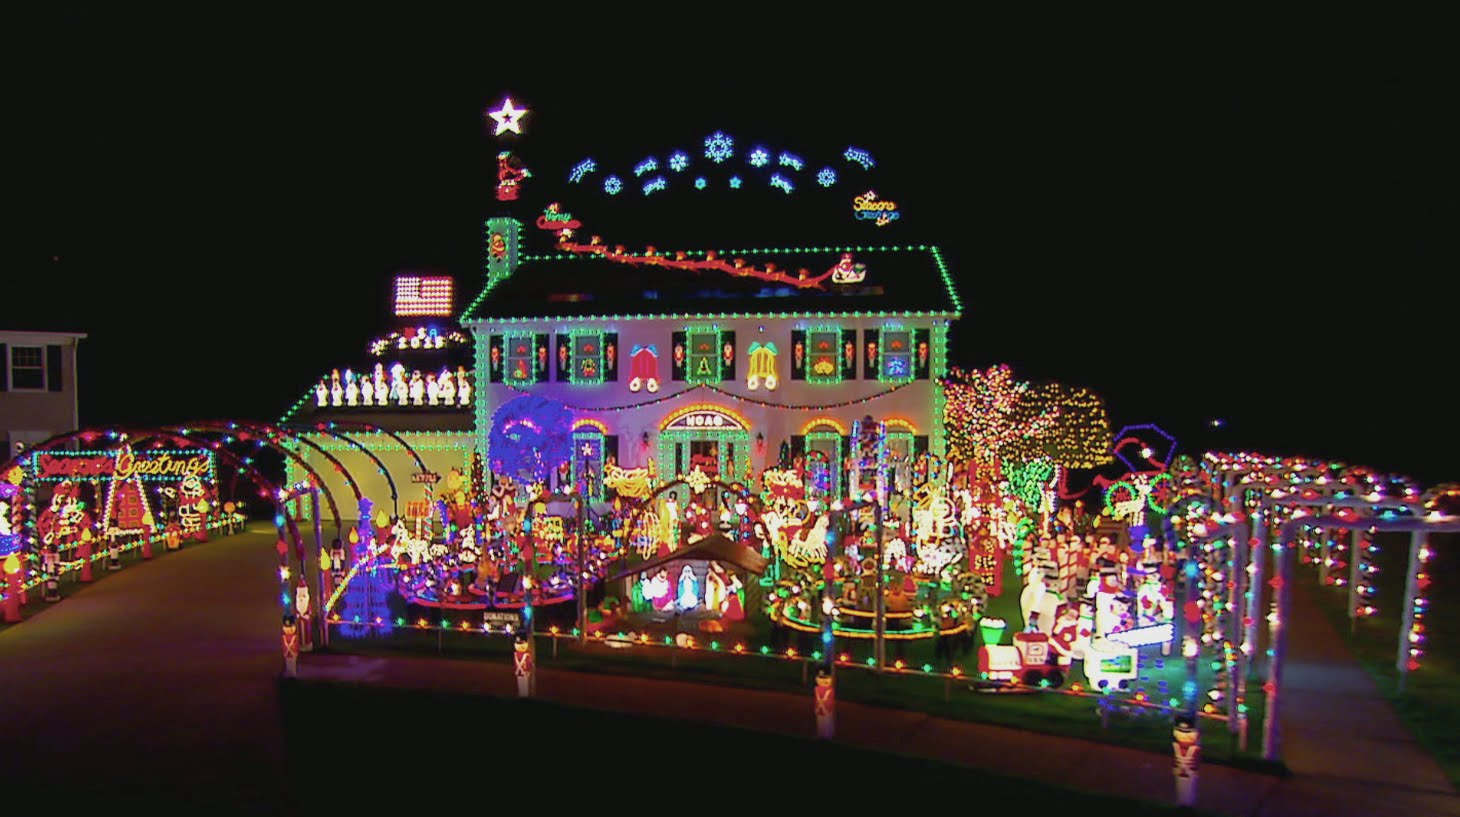 The Great Christmas Light Fight Renewed for Season 7 - The TV ...